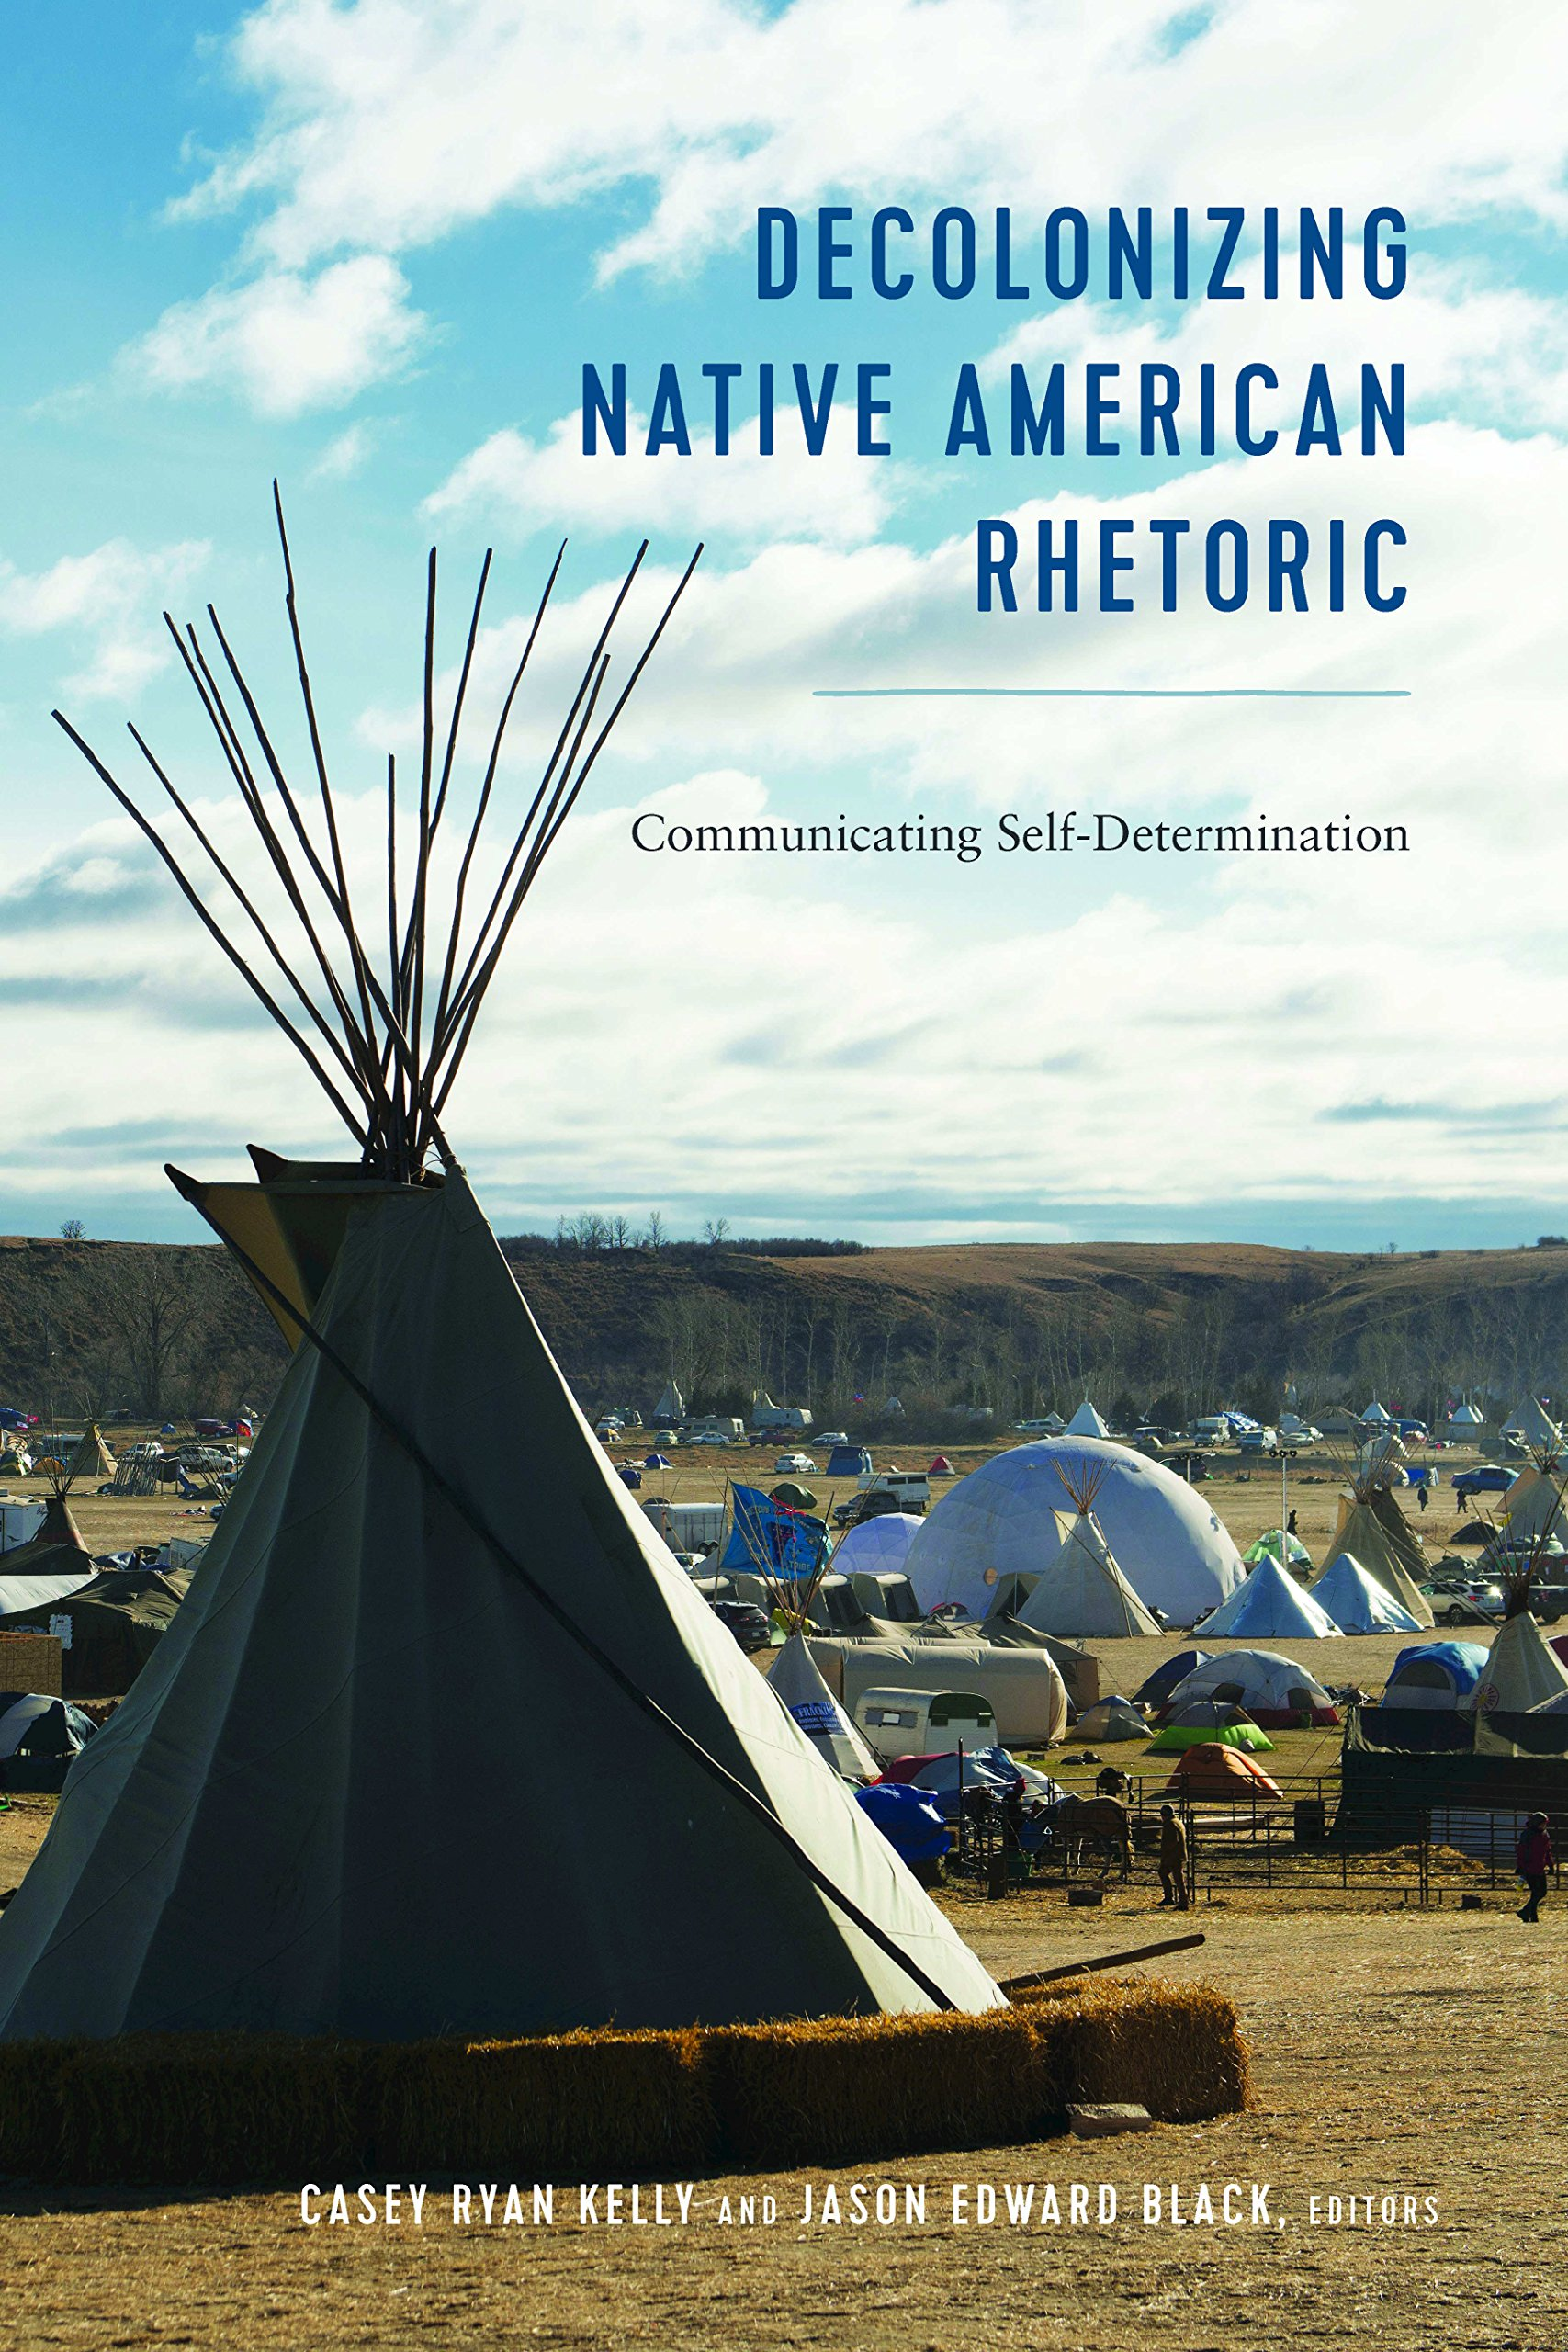 Decolonizing Native American Rhetoric: Communicating Self-Determination (Frontiers in Political Communication) by Peter Lang Inc., International Academic Publishers